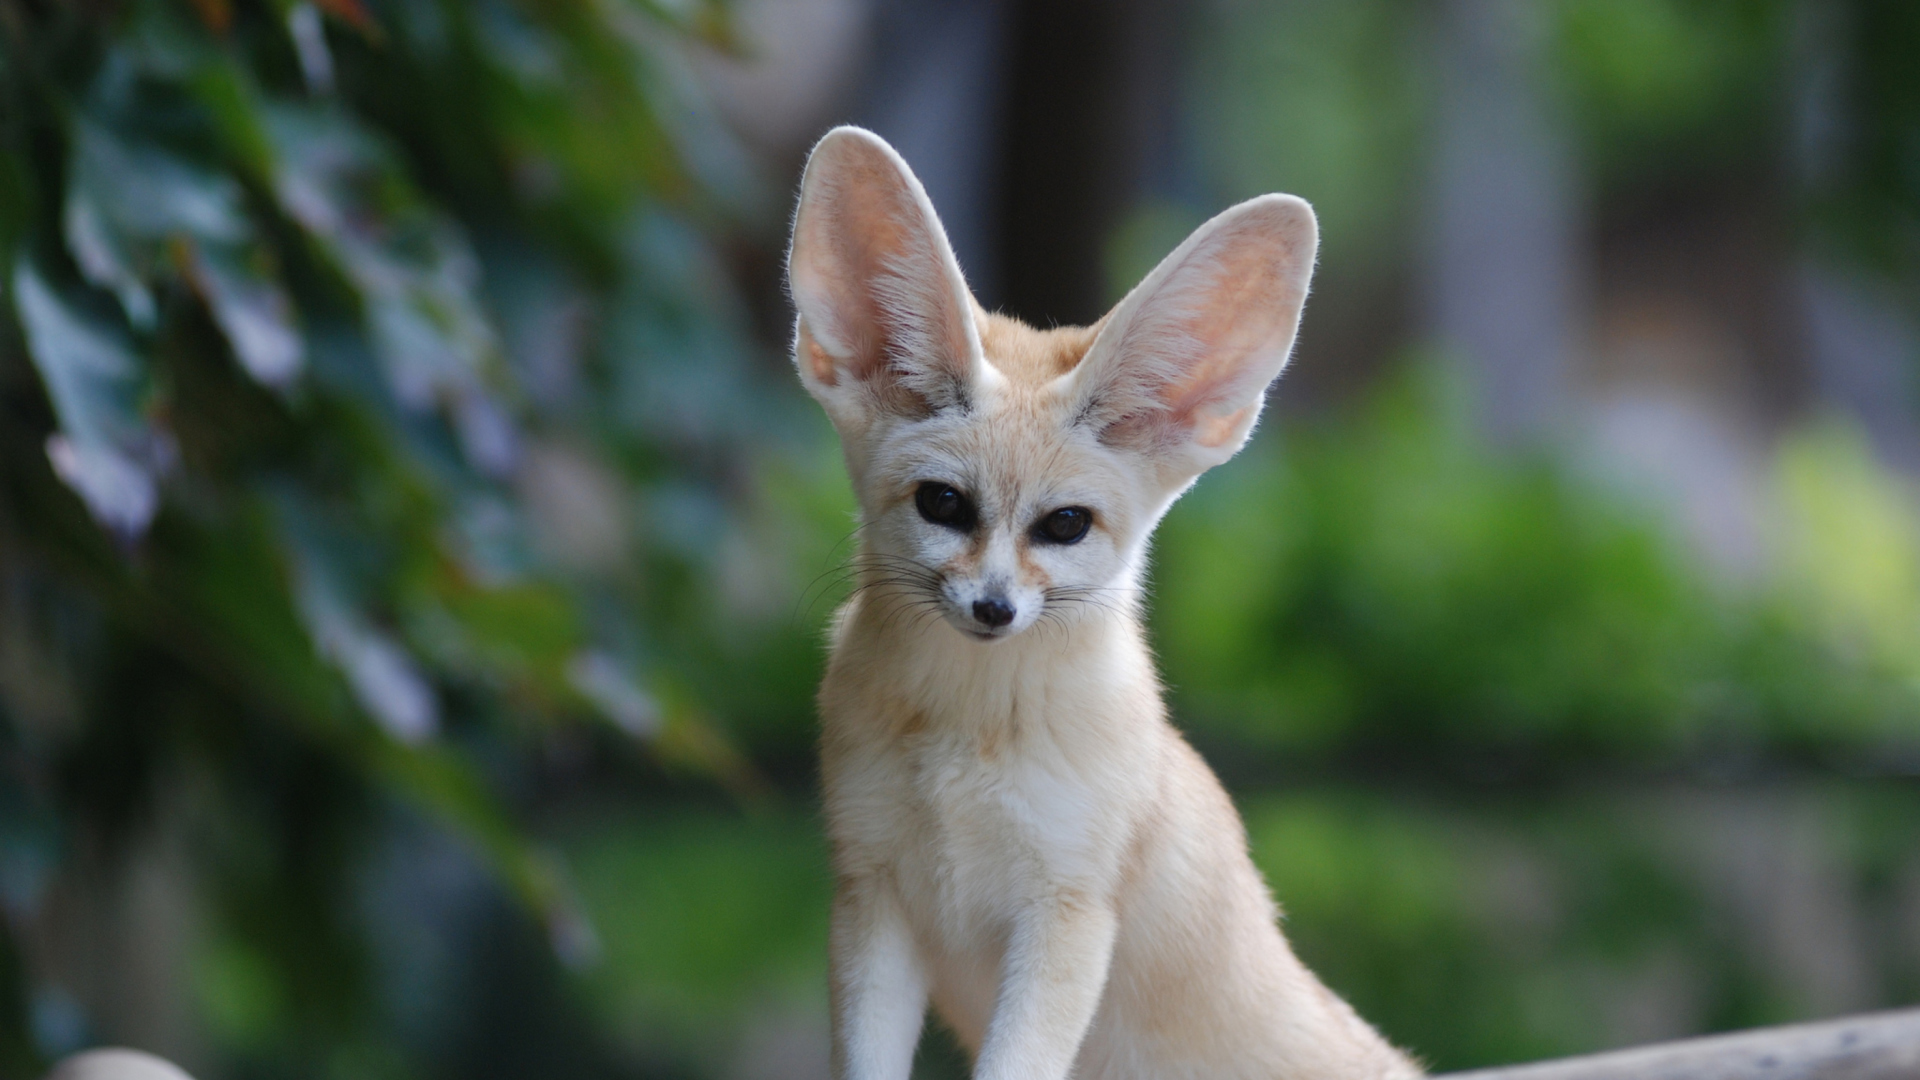 Animals with big ears pictures Long Ears Images Pixabay Download Free Pictures